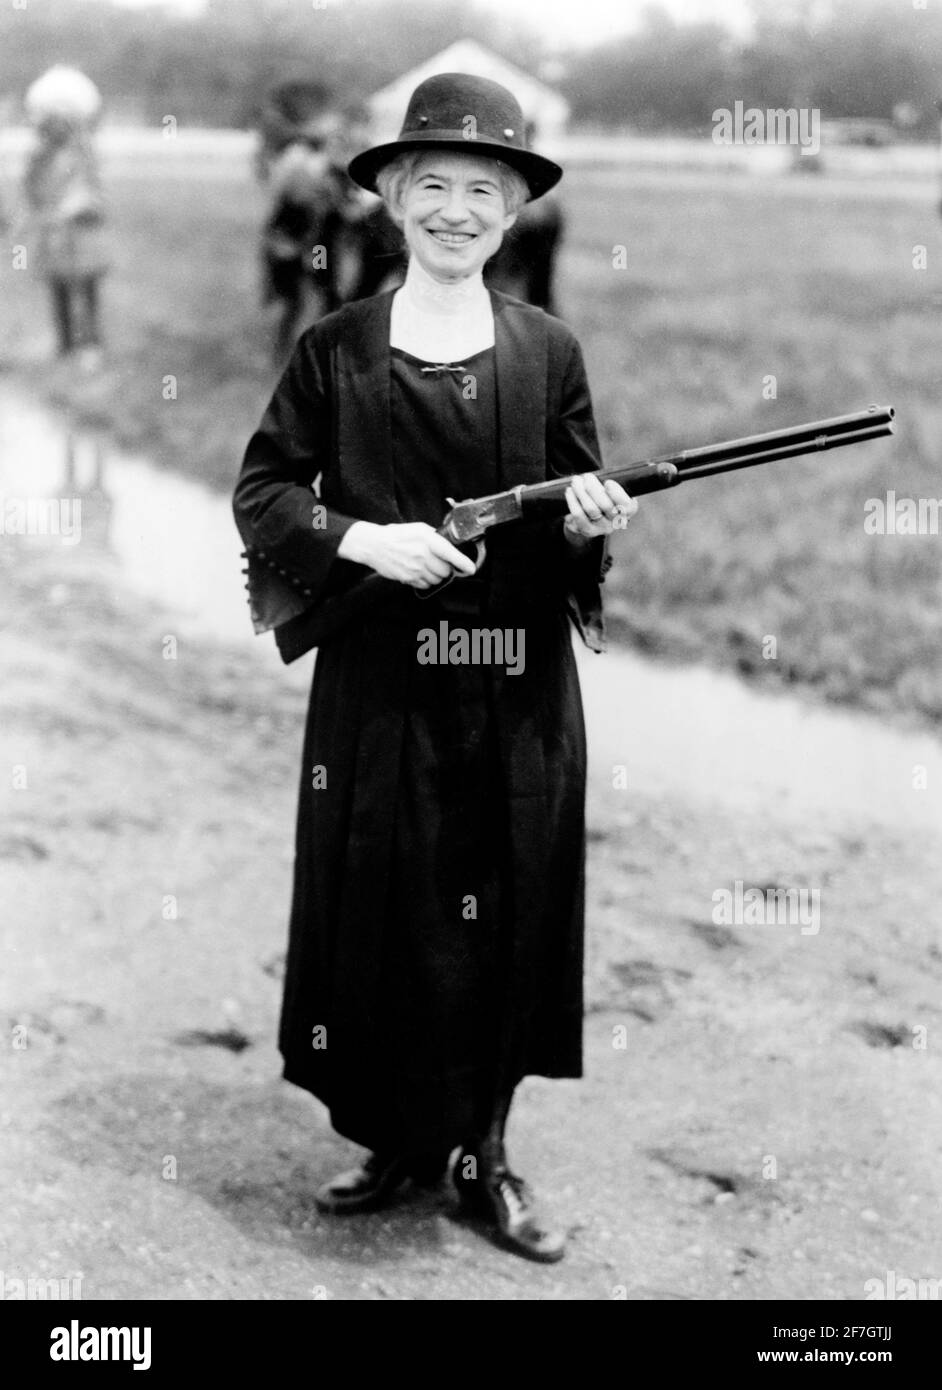 Annie Oakley with the gun given to her by Buffalo Bill. Portrait of the famous American sharpshooter, Annie Oakley  (b. Phoebe Ann Mosey, 1860-1926) , 1922 Stock Photo